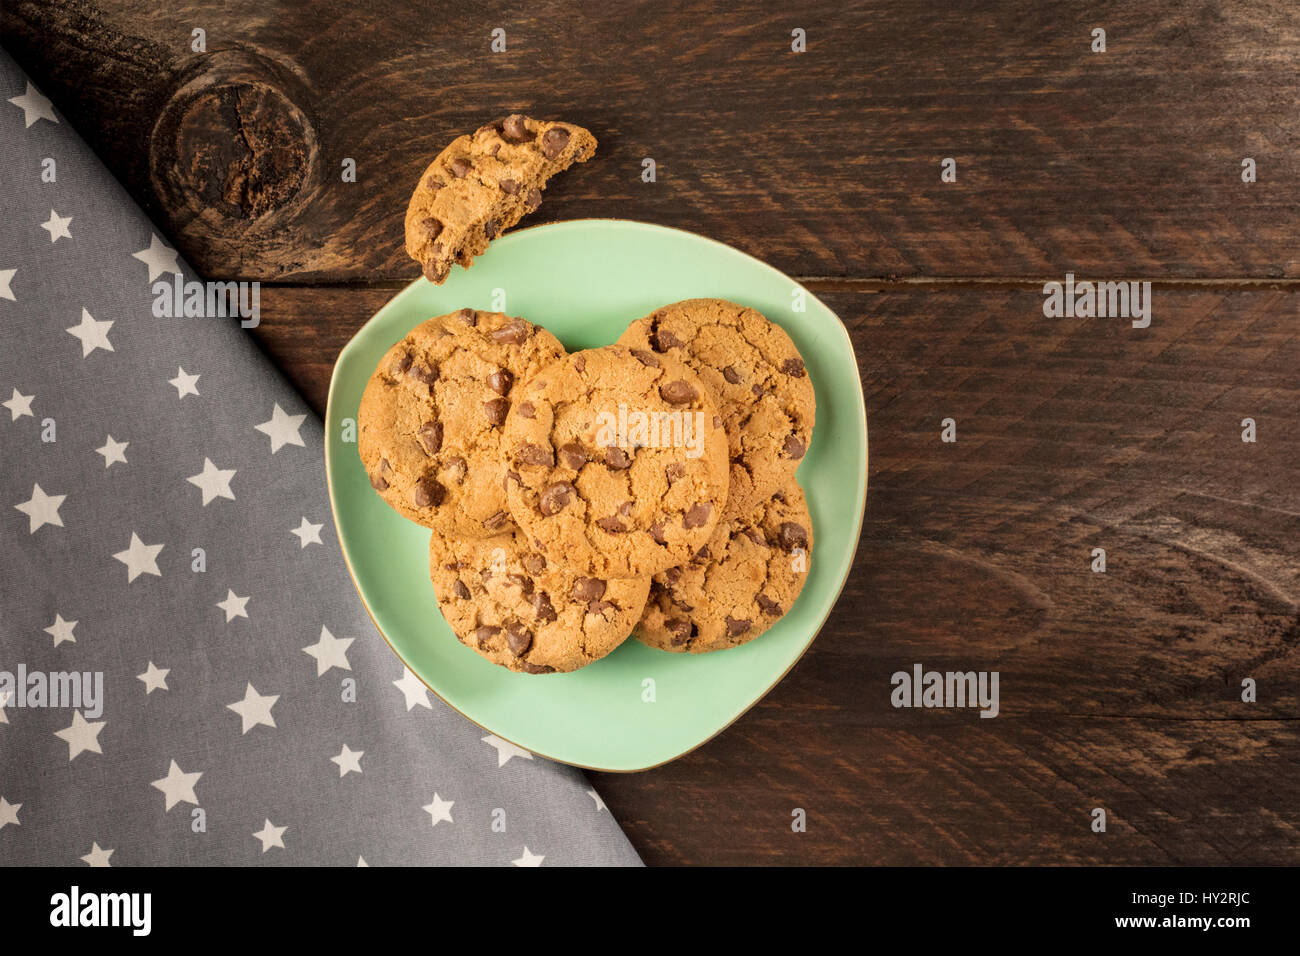 Plate of chocolate chips cookies, shot from above - Stock Image